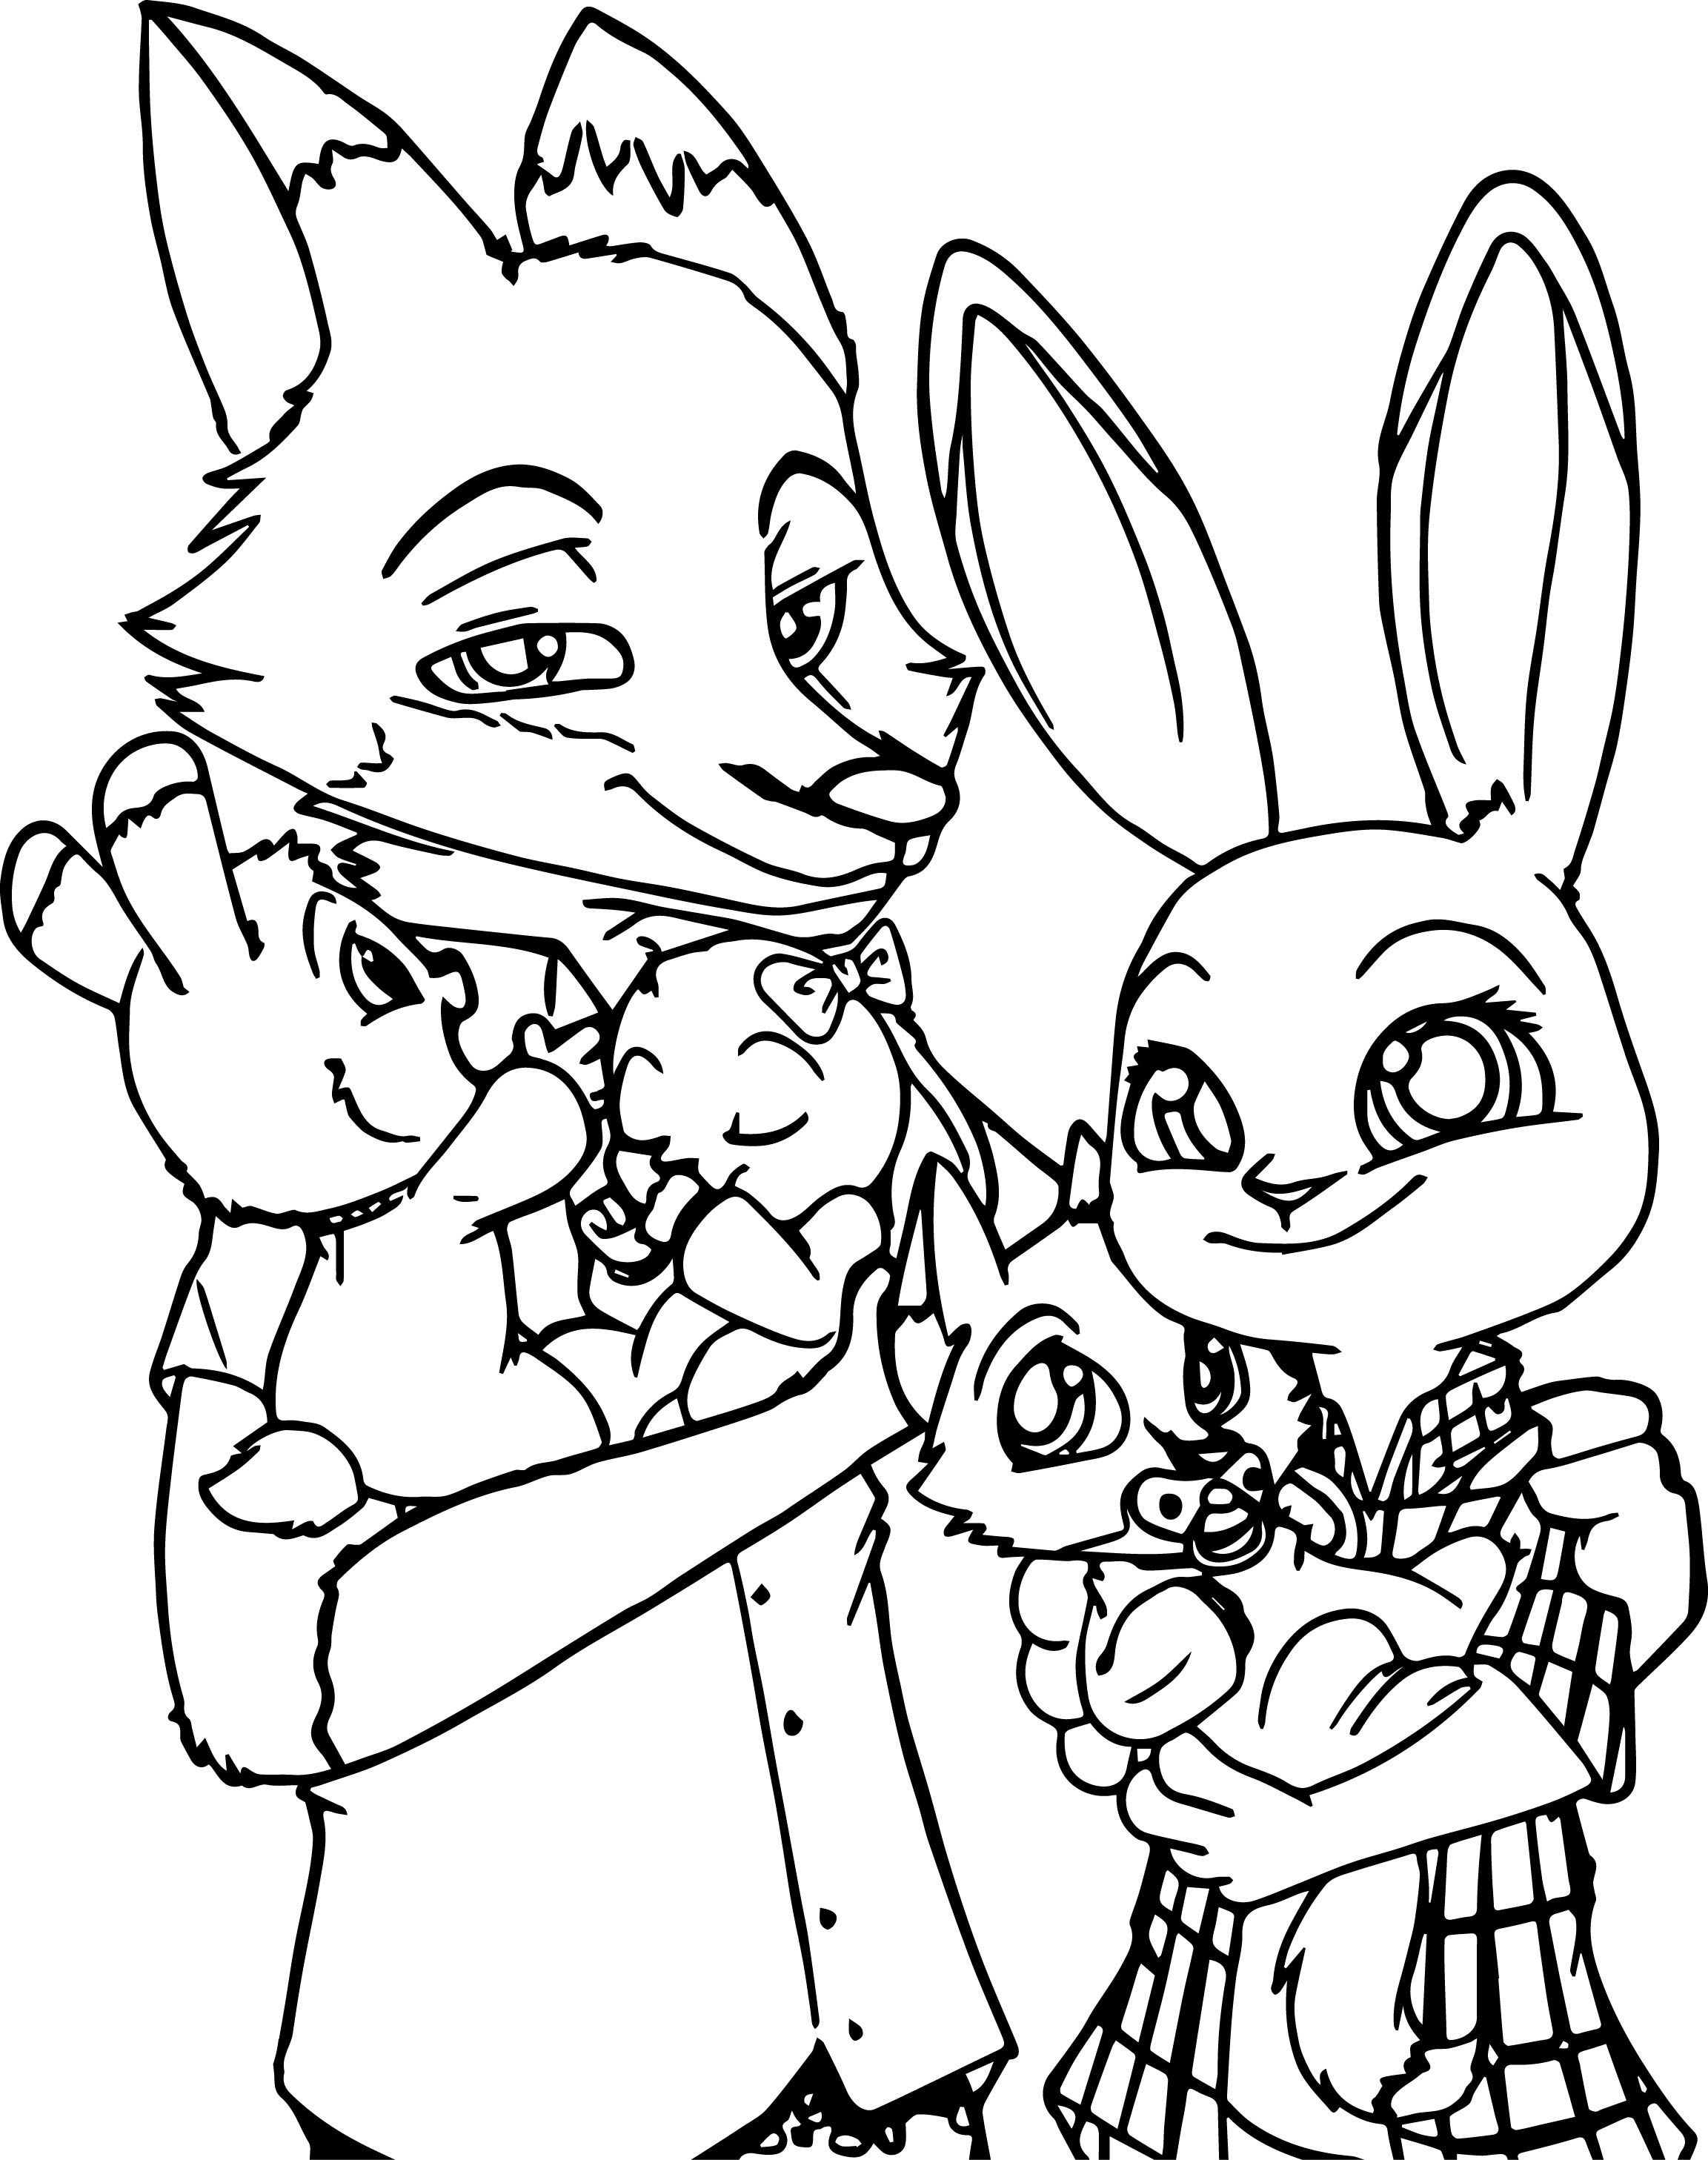 2305x2915 Awesome Cartoon Fox Coloring Pages Gallery Printable Coloring Sheet